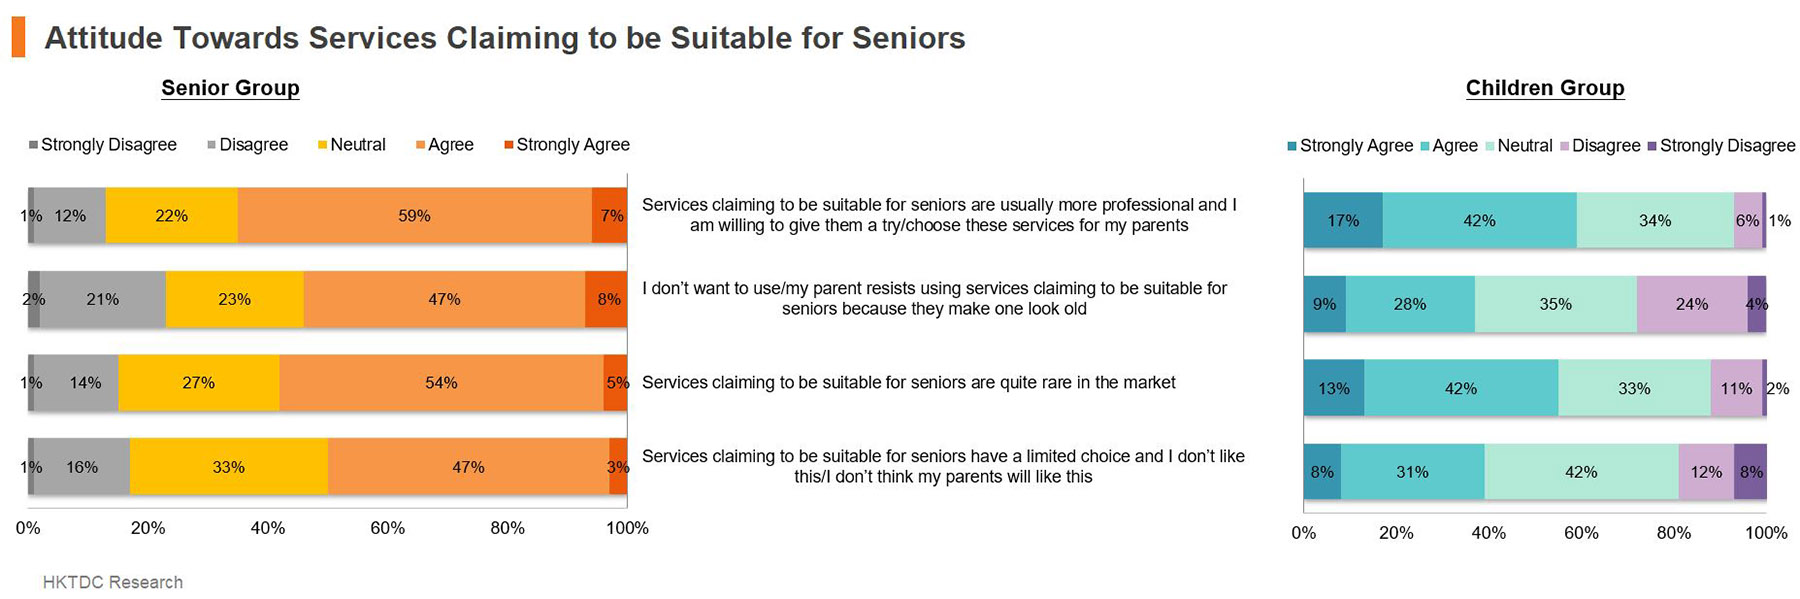 Chart: Attitude Towards Services Claiming to be Suitable for Seniors